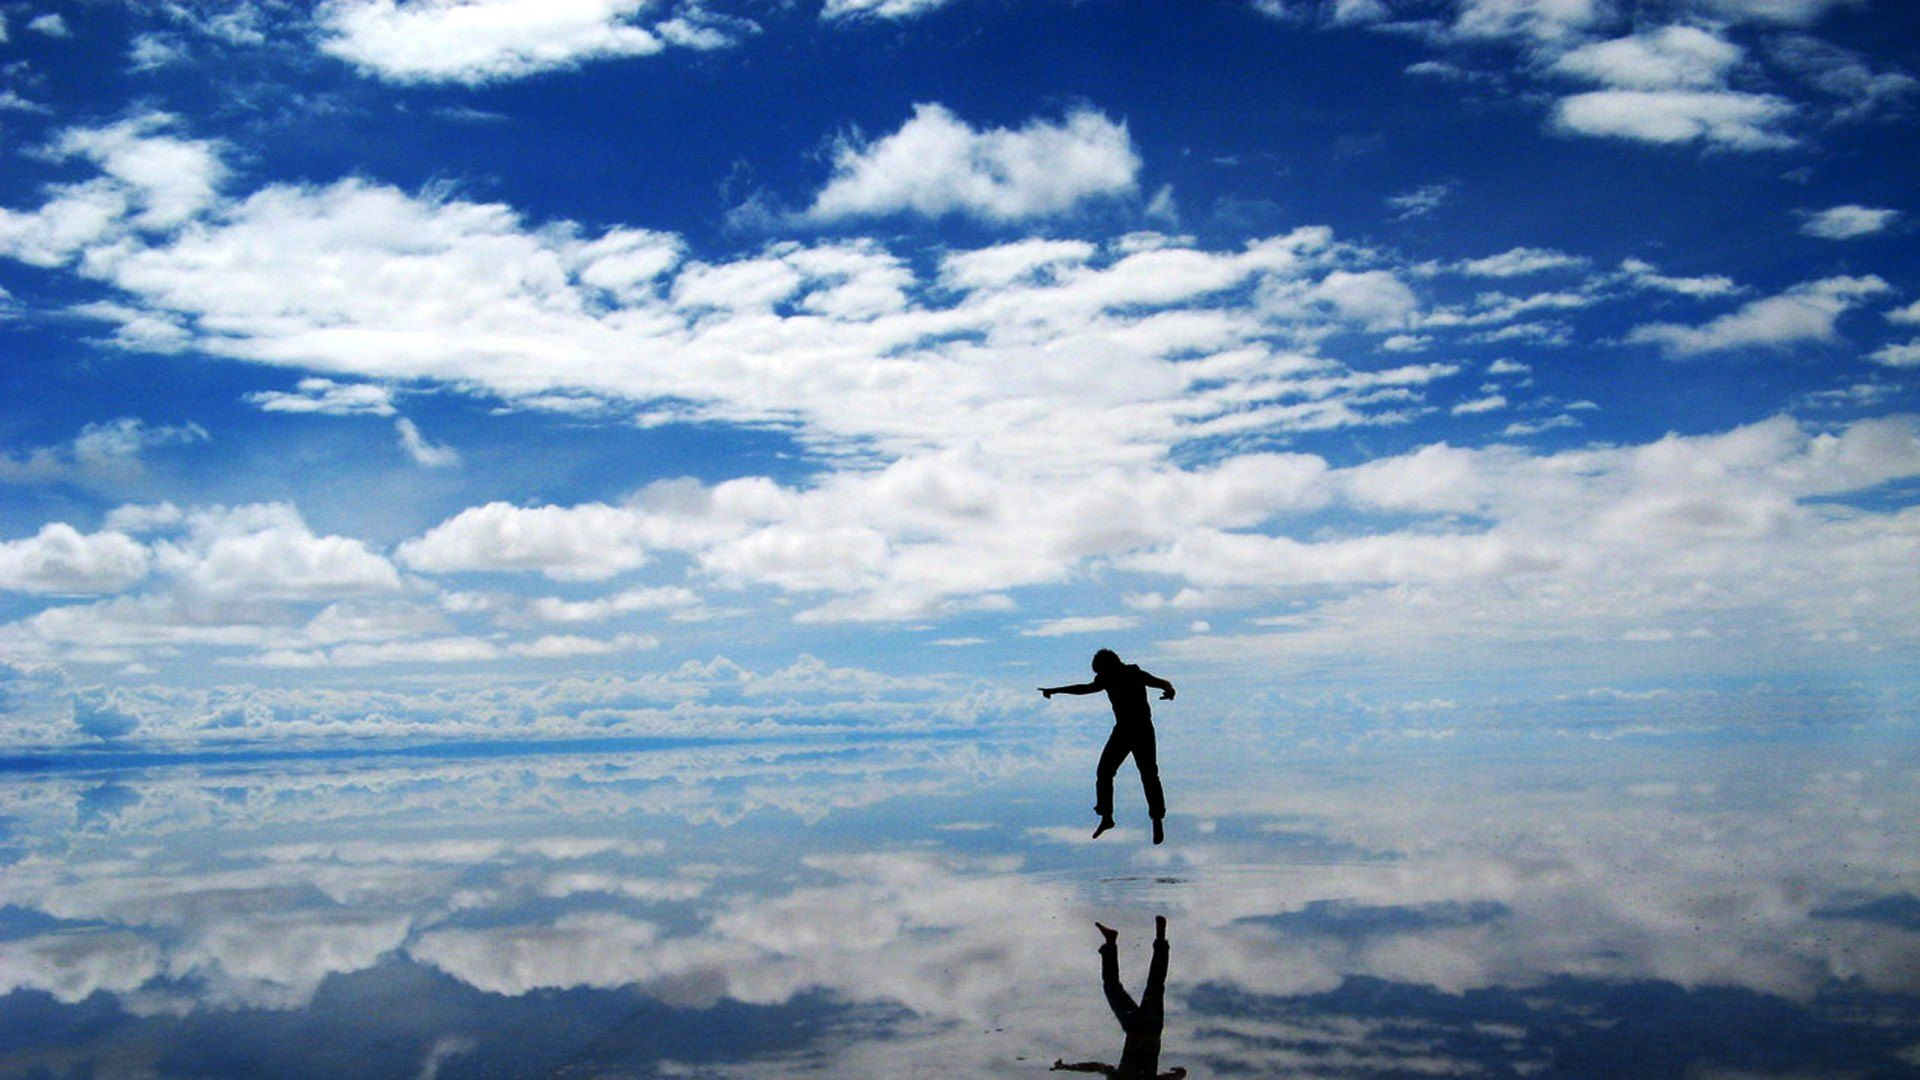 Salar De Uyuni Bolivia Largest Salt Flats In The World Mysterious Places On Earth Breathtaking Places Incredible Places